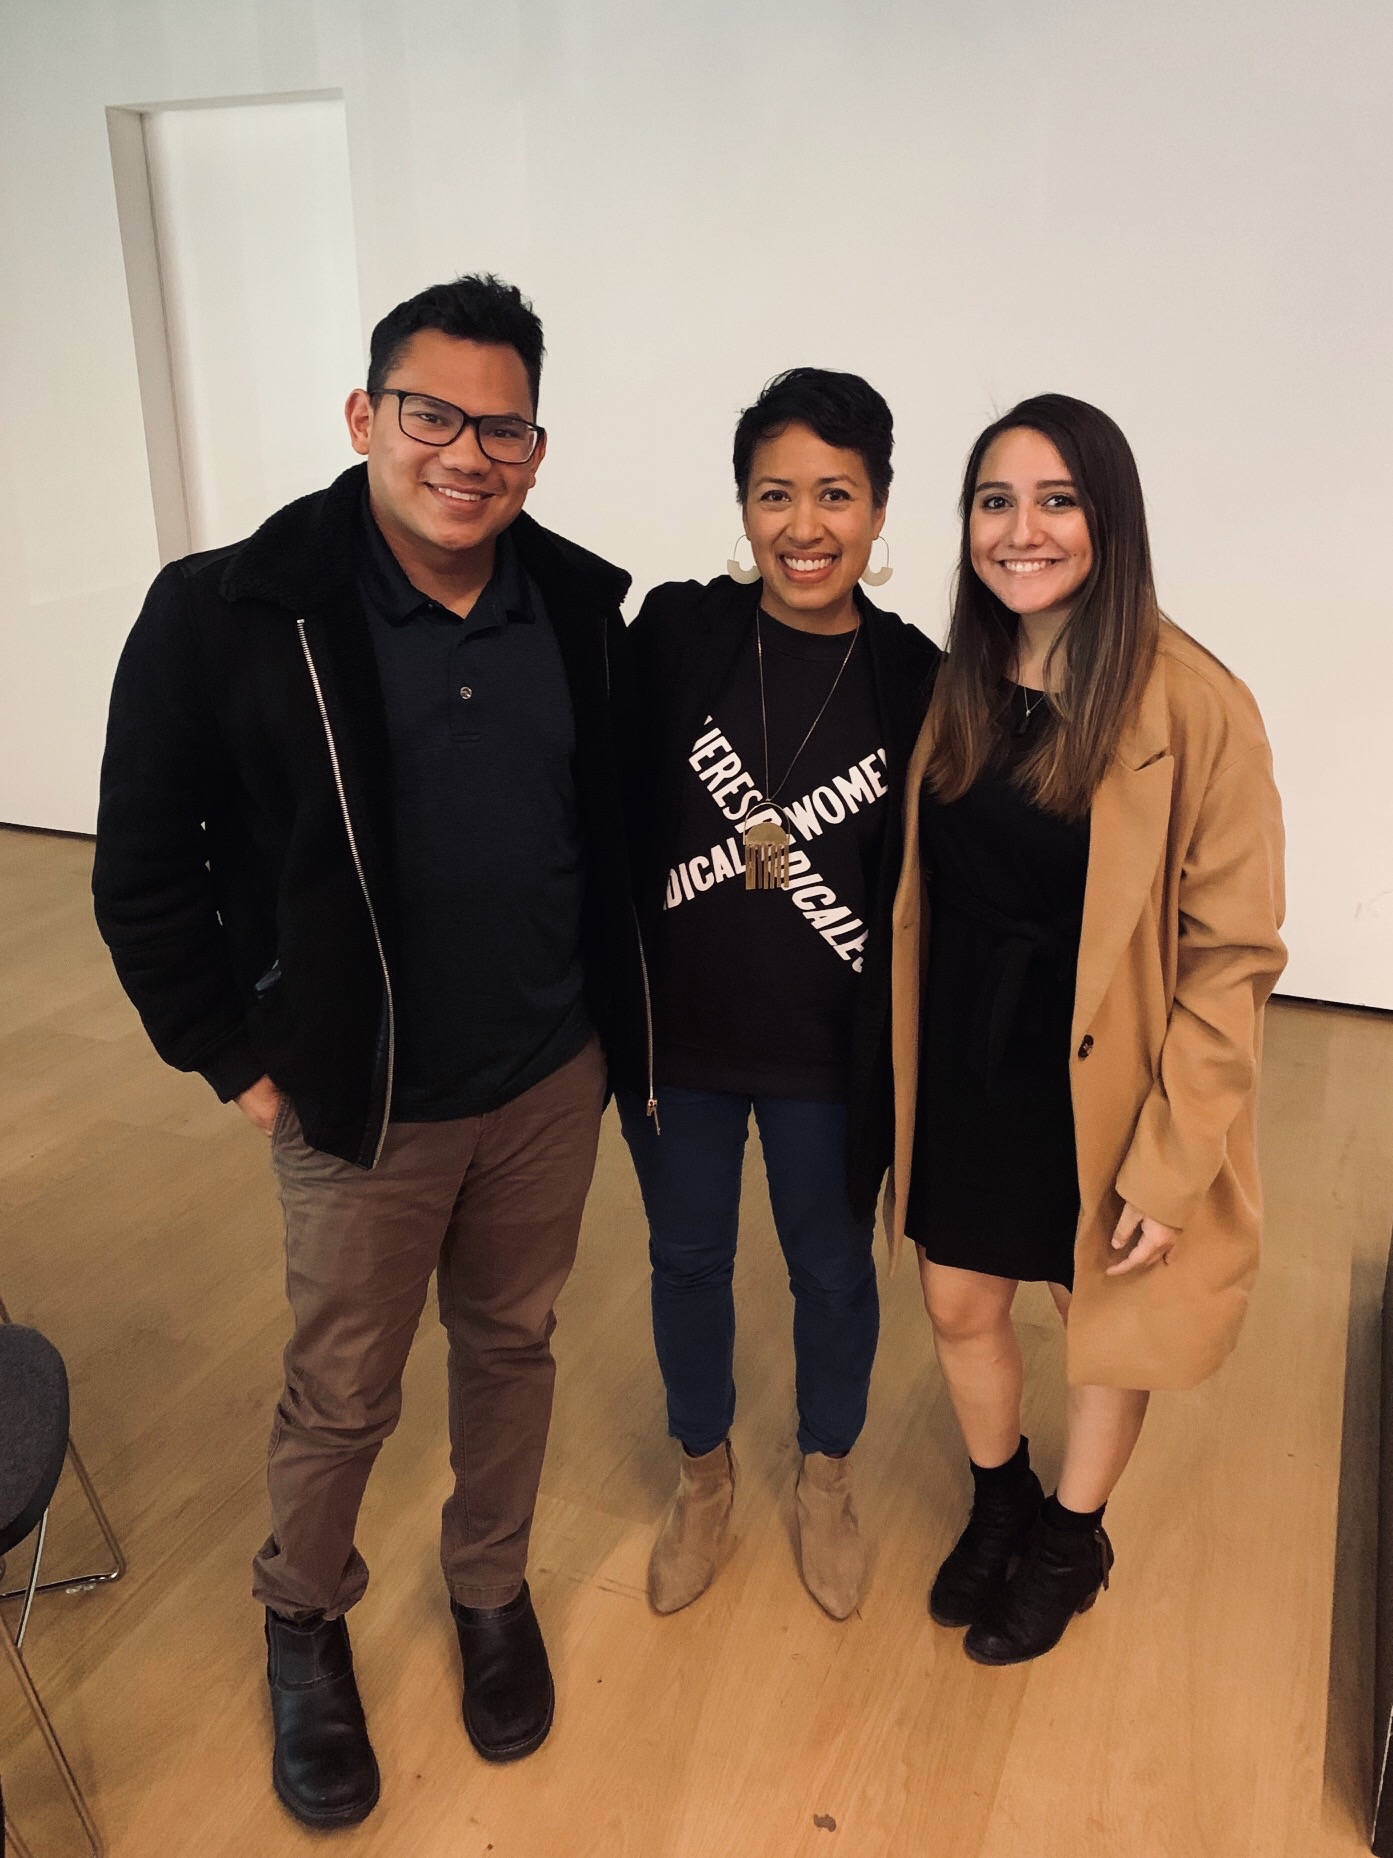 From left to right: 2018–20 LEAP Fellow Adrienne Adams; Associate Director, Academic Programs, Hammer Museum Theresa Sotto; and 2019–20 LEAP Fellow Deliasofia Zacarias, photo: Deliasofia Zacarias